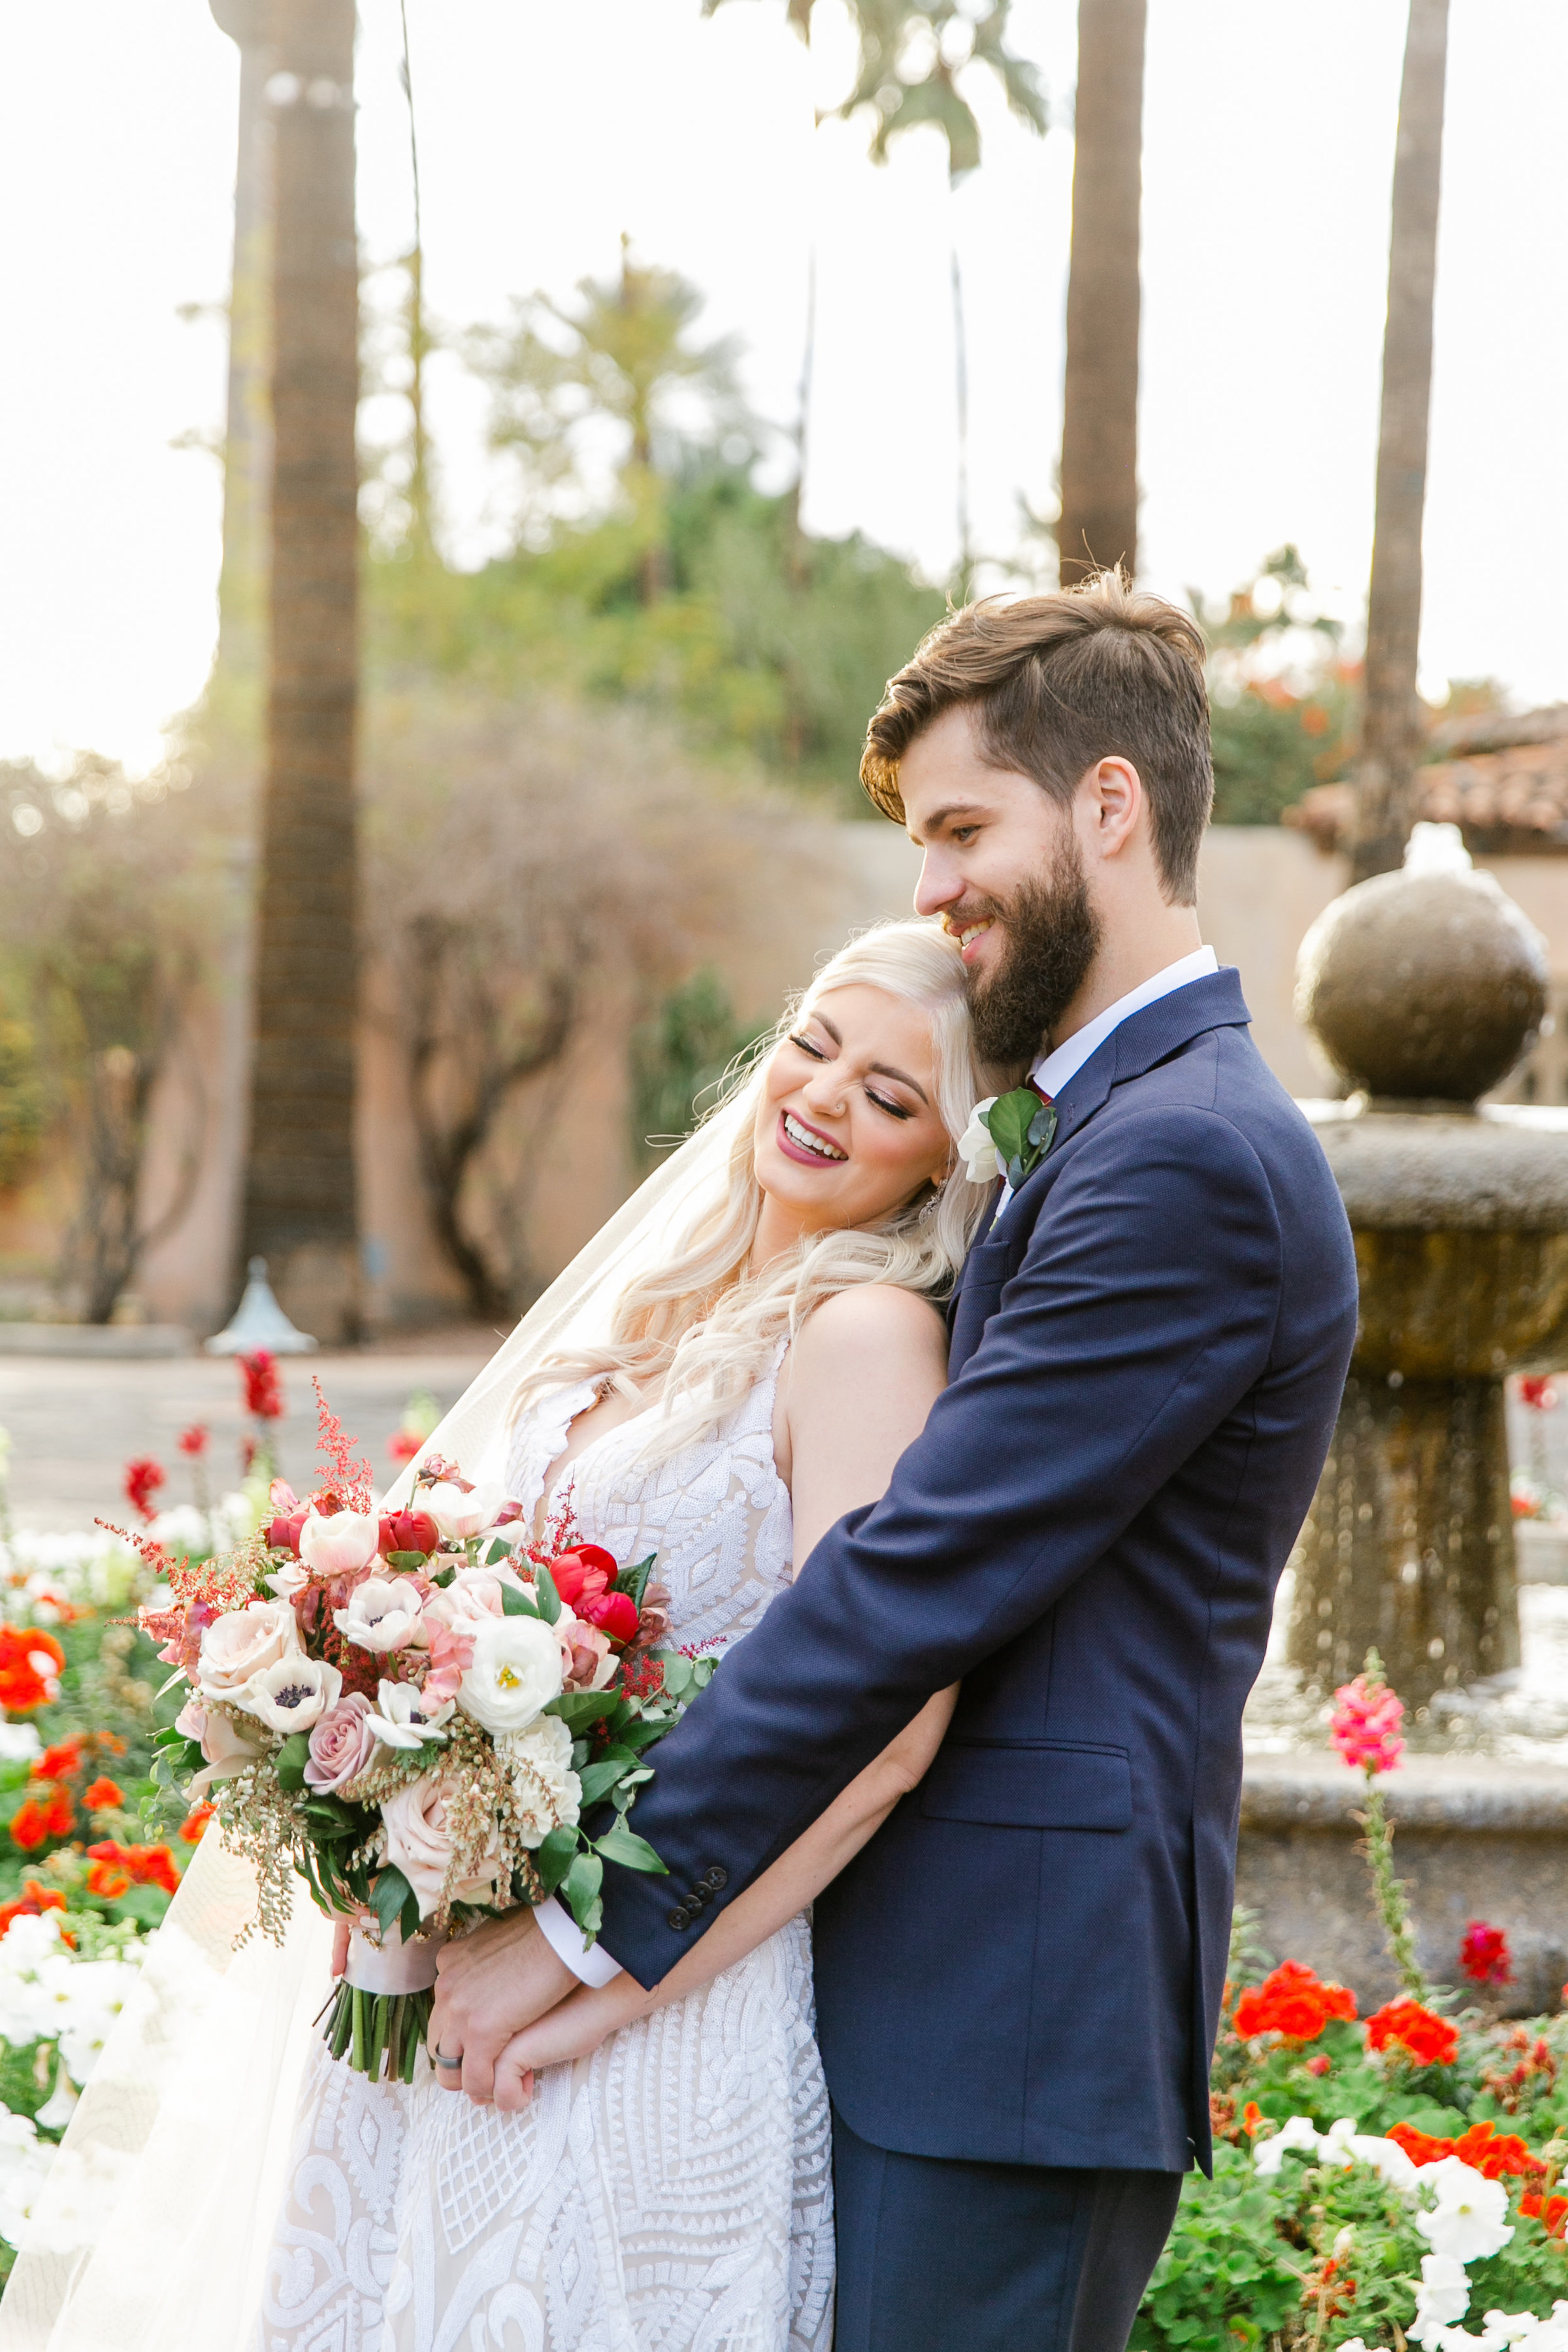 Karlie Colleen Photography - The Royal Palms Wedding - Some Like It Classic - Alex & Sam-547